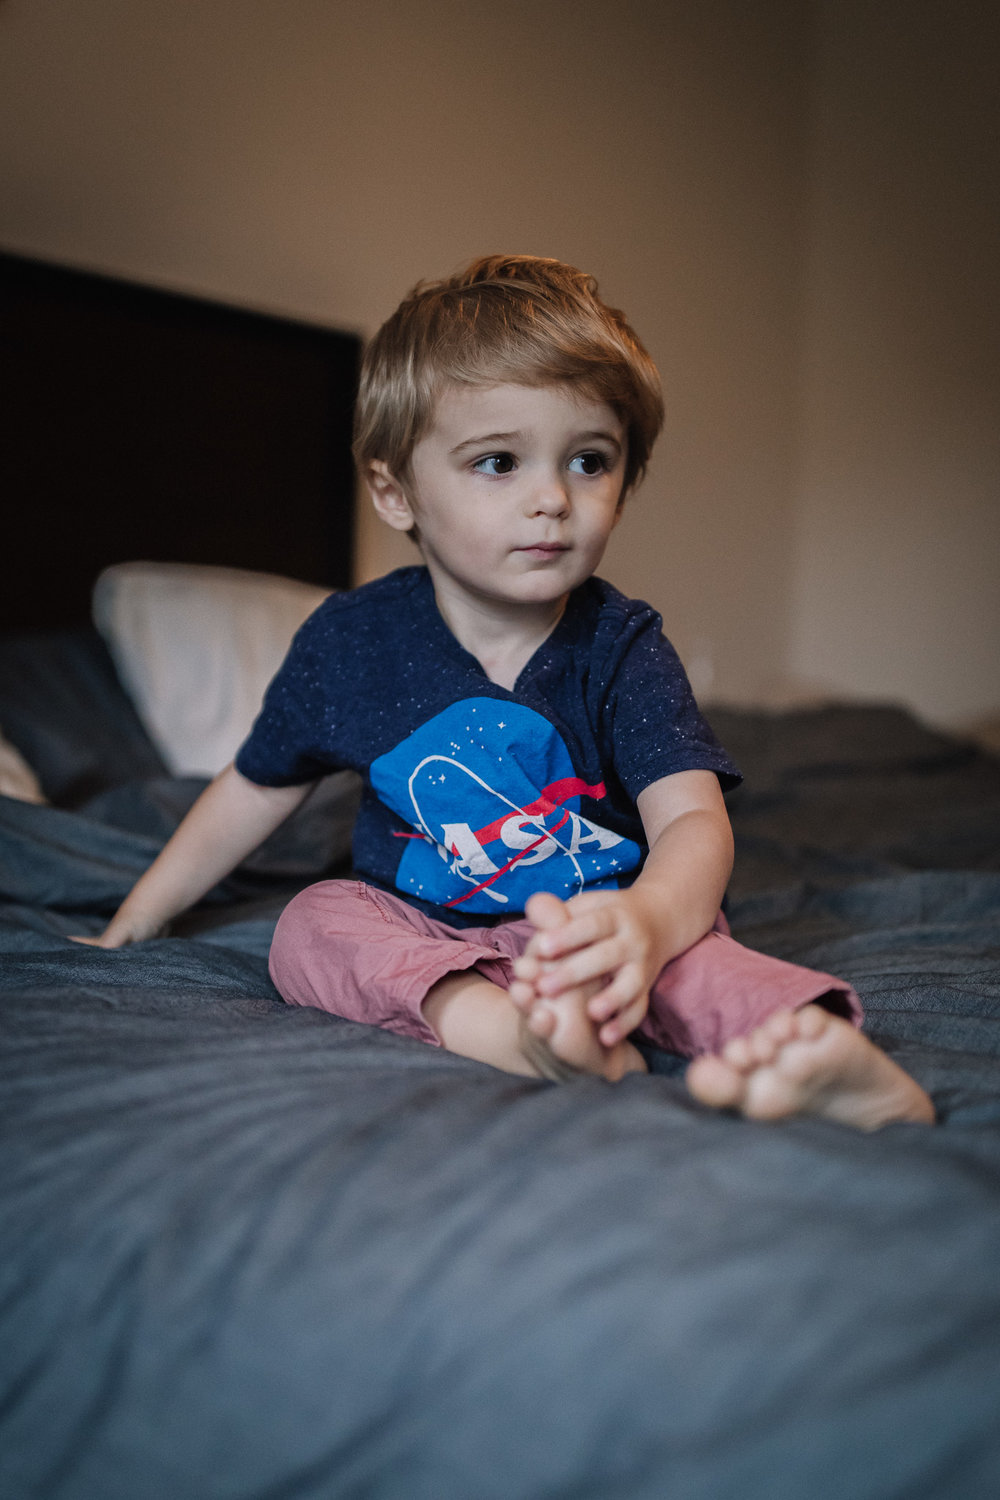 little boy on bed